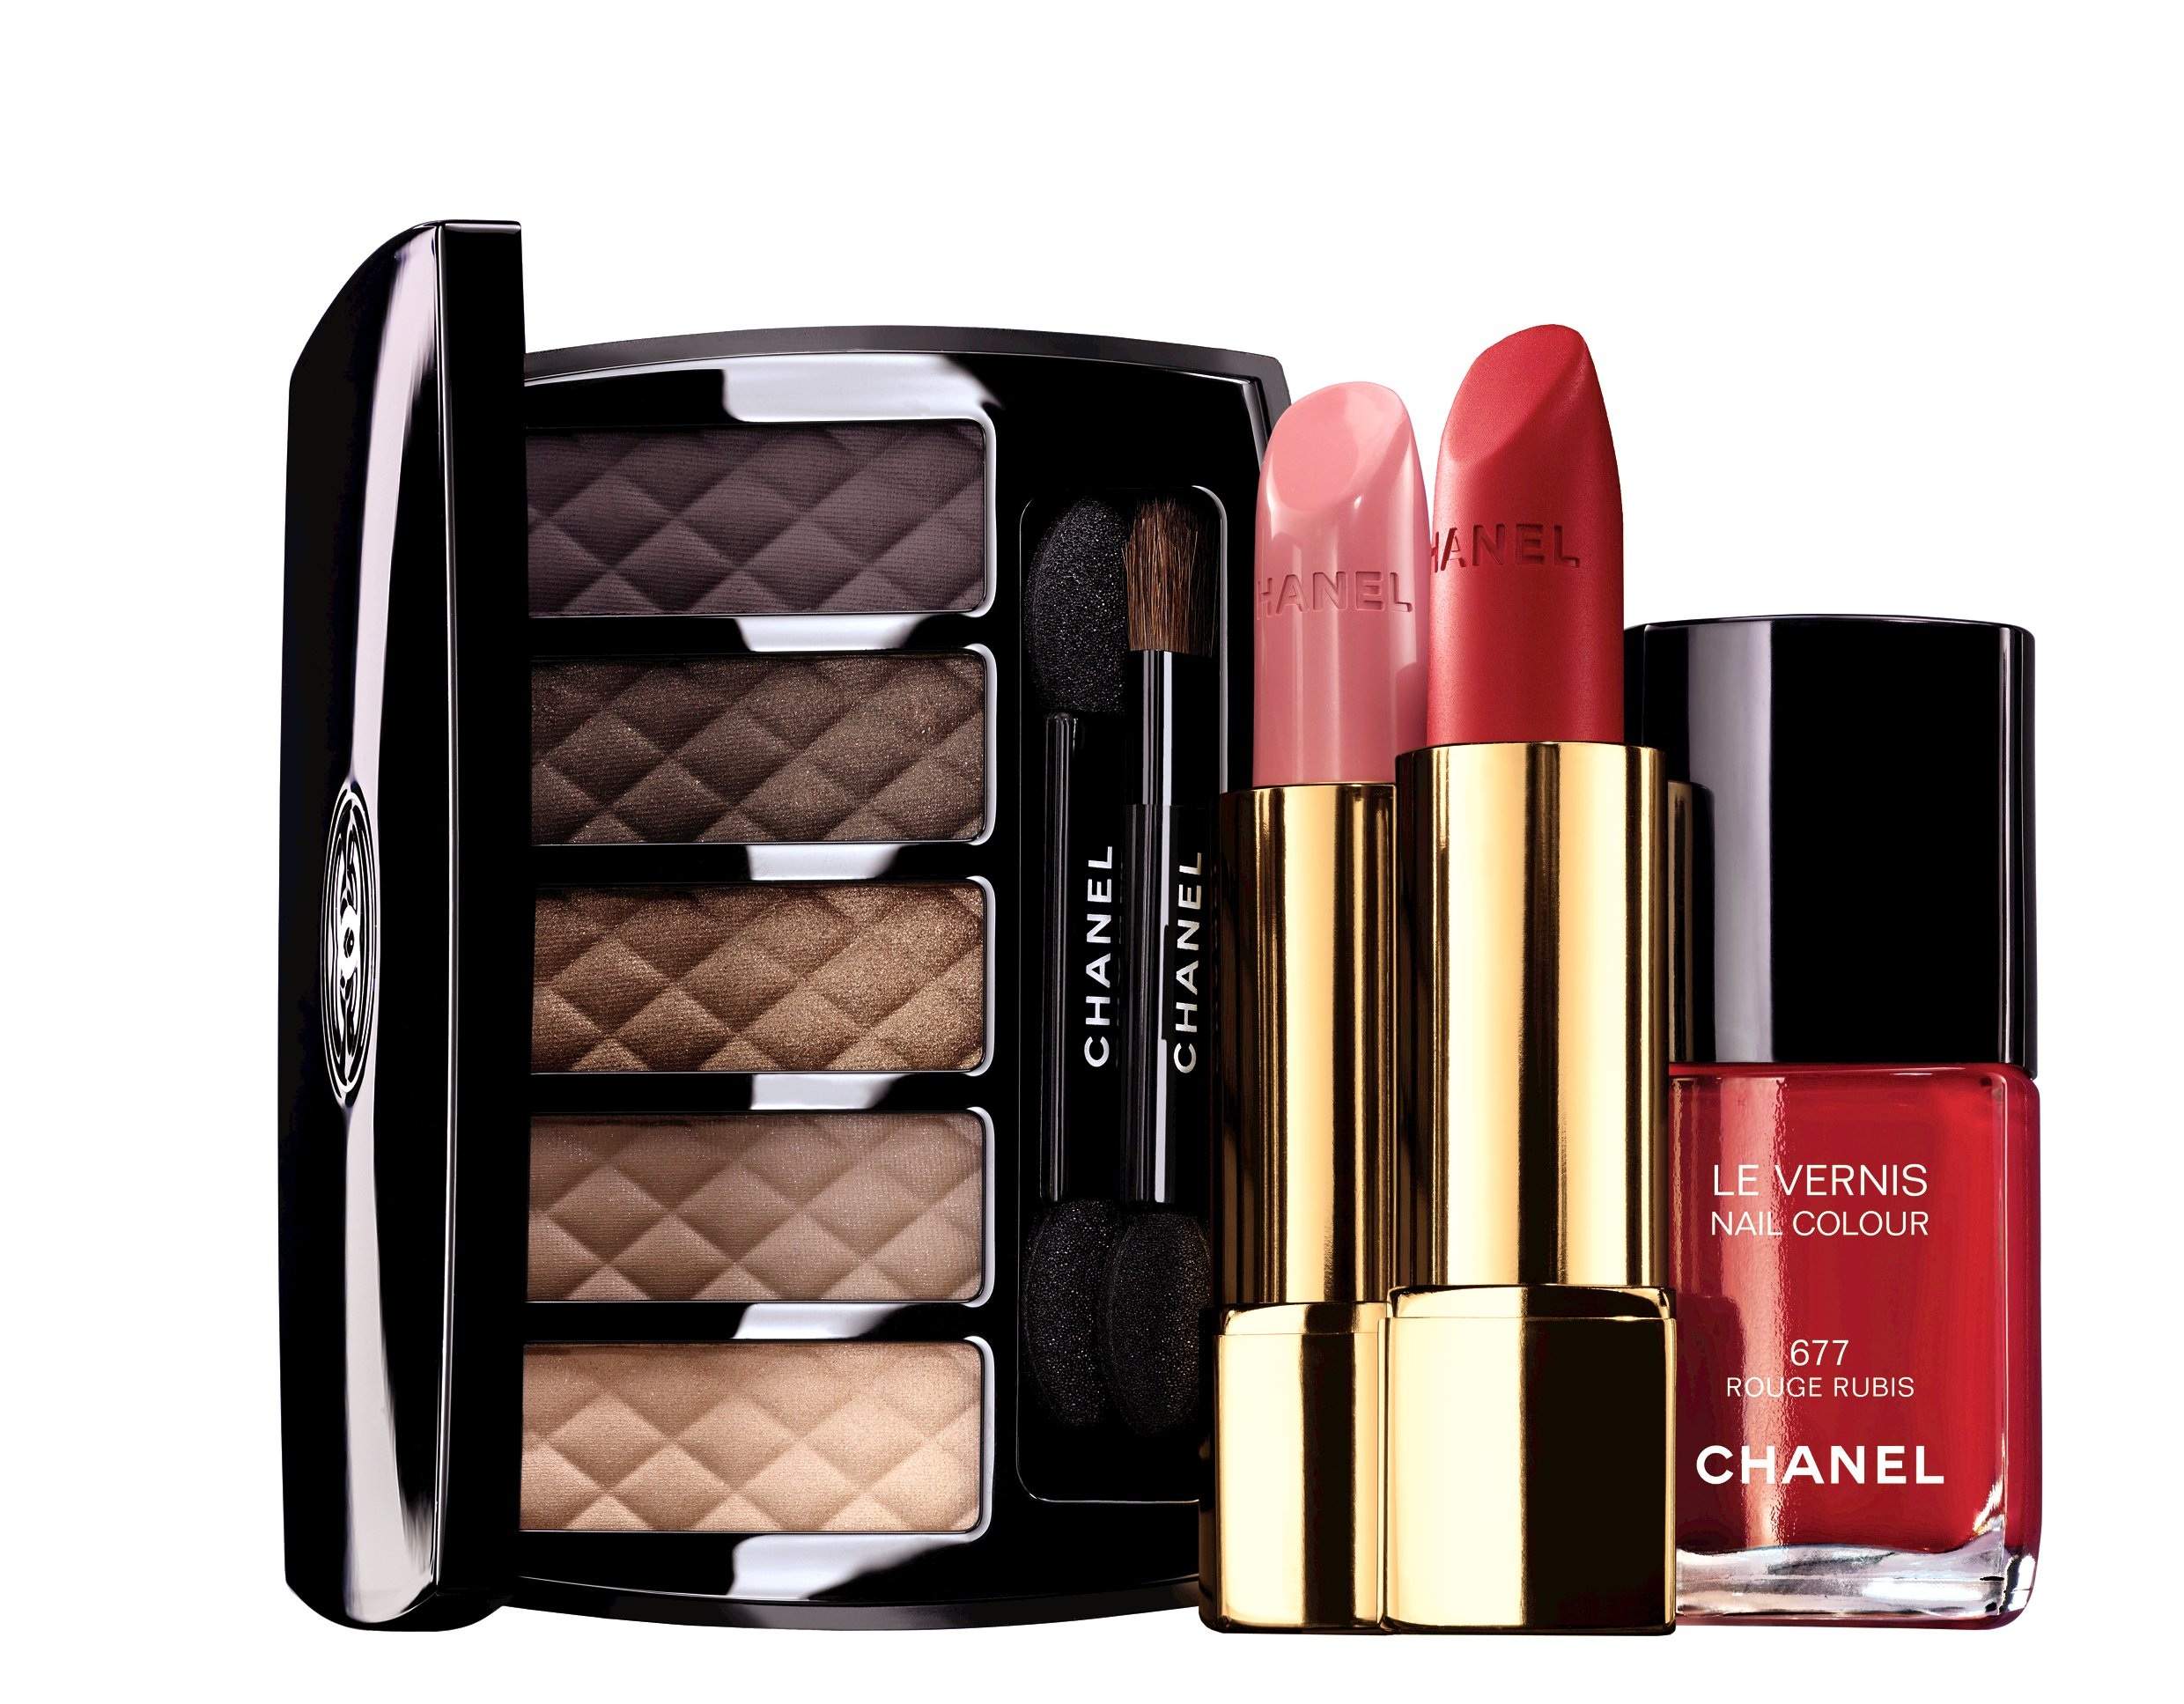 Chanel's Christmas collection